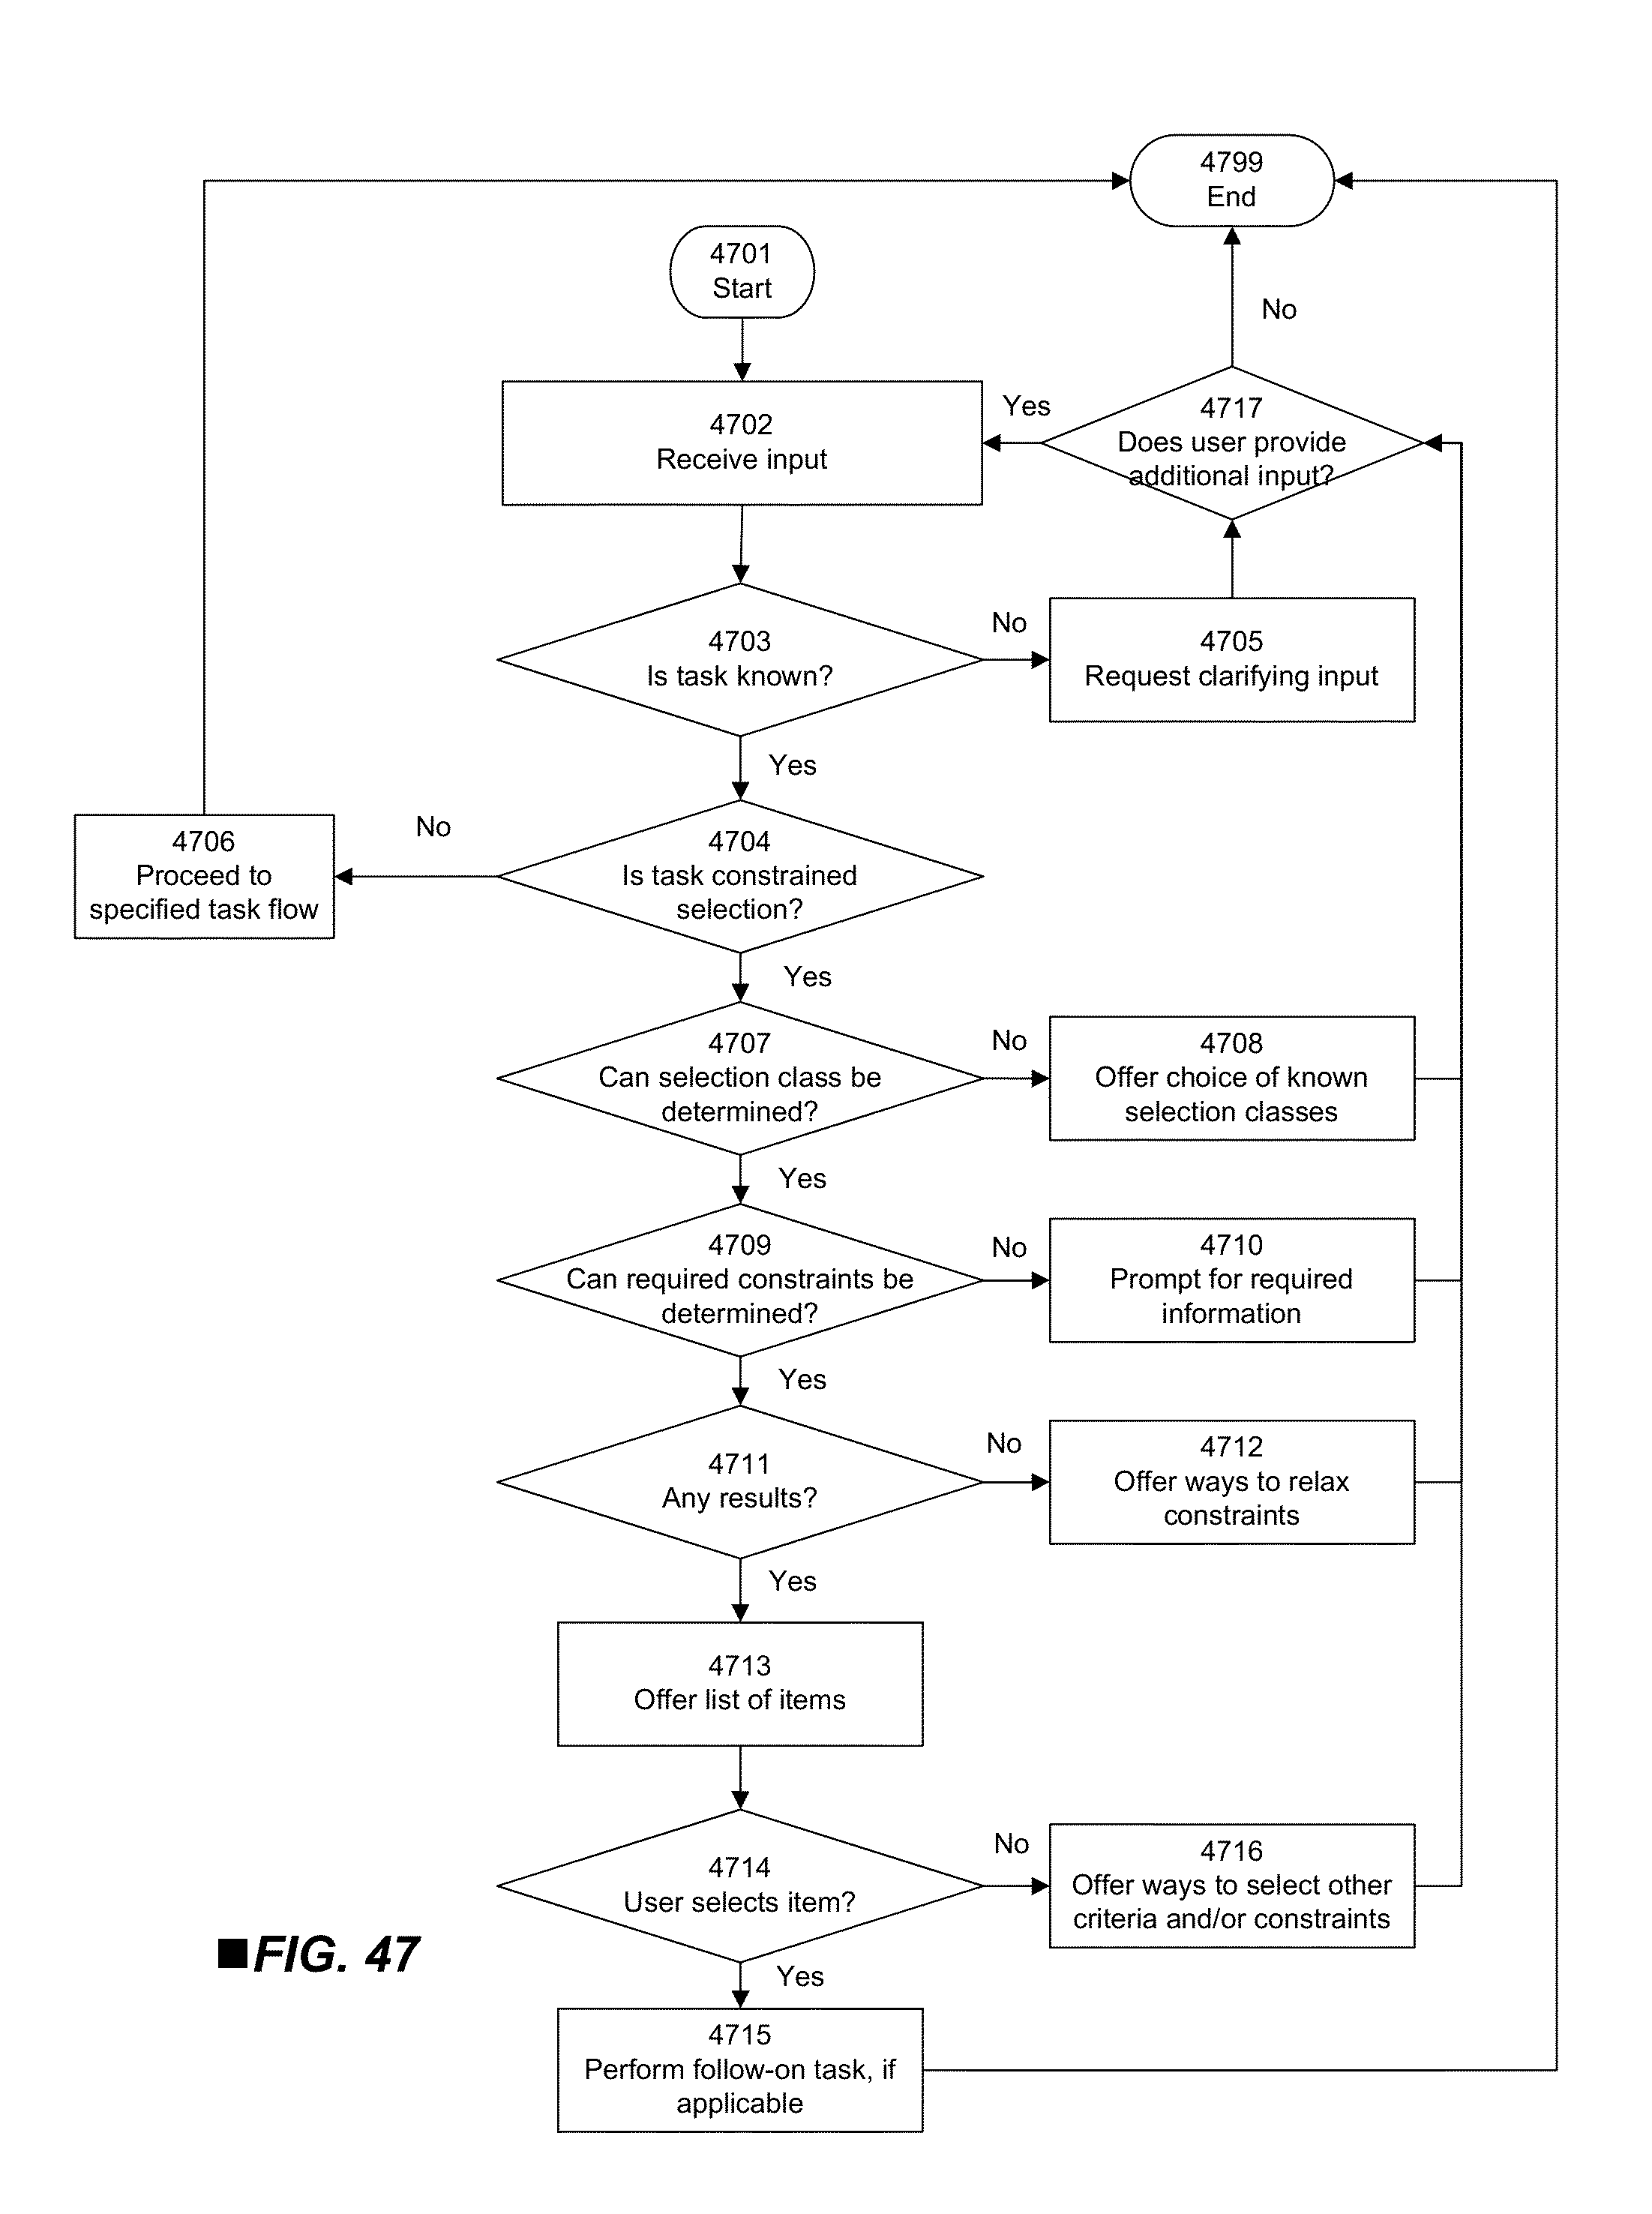 Us9117447b2 using event alert text as input to an automated assistant patents